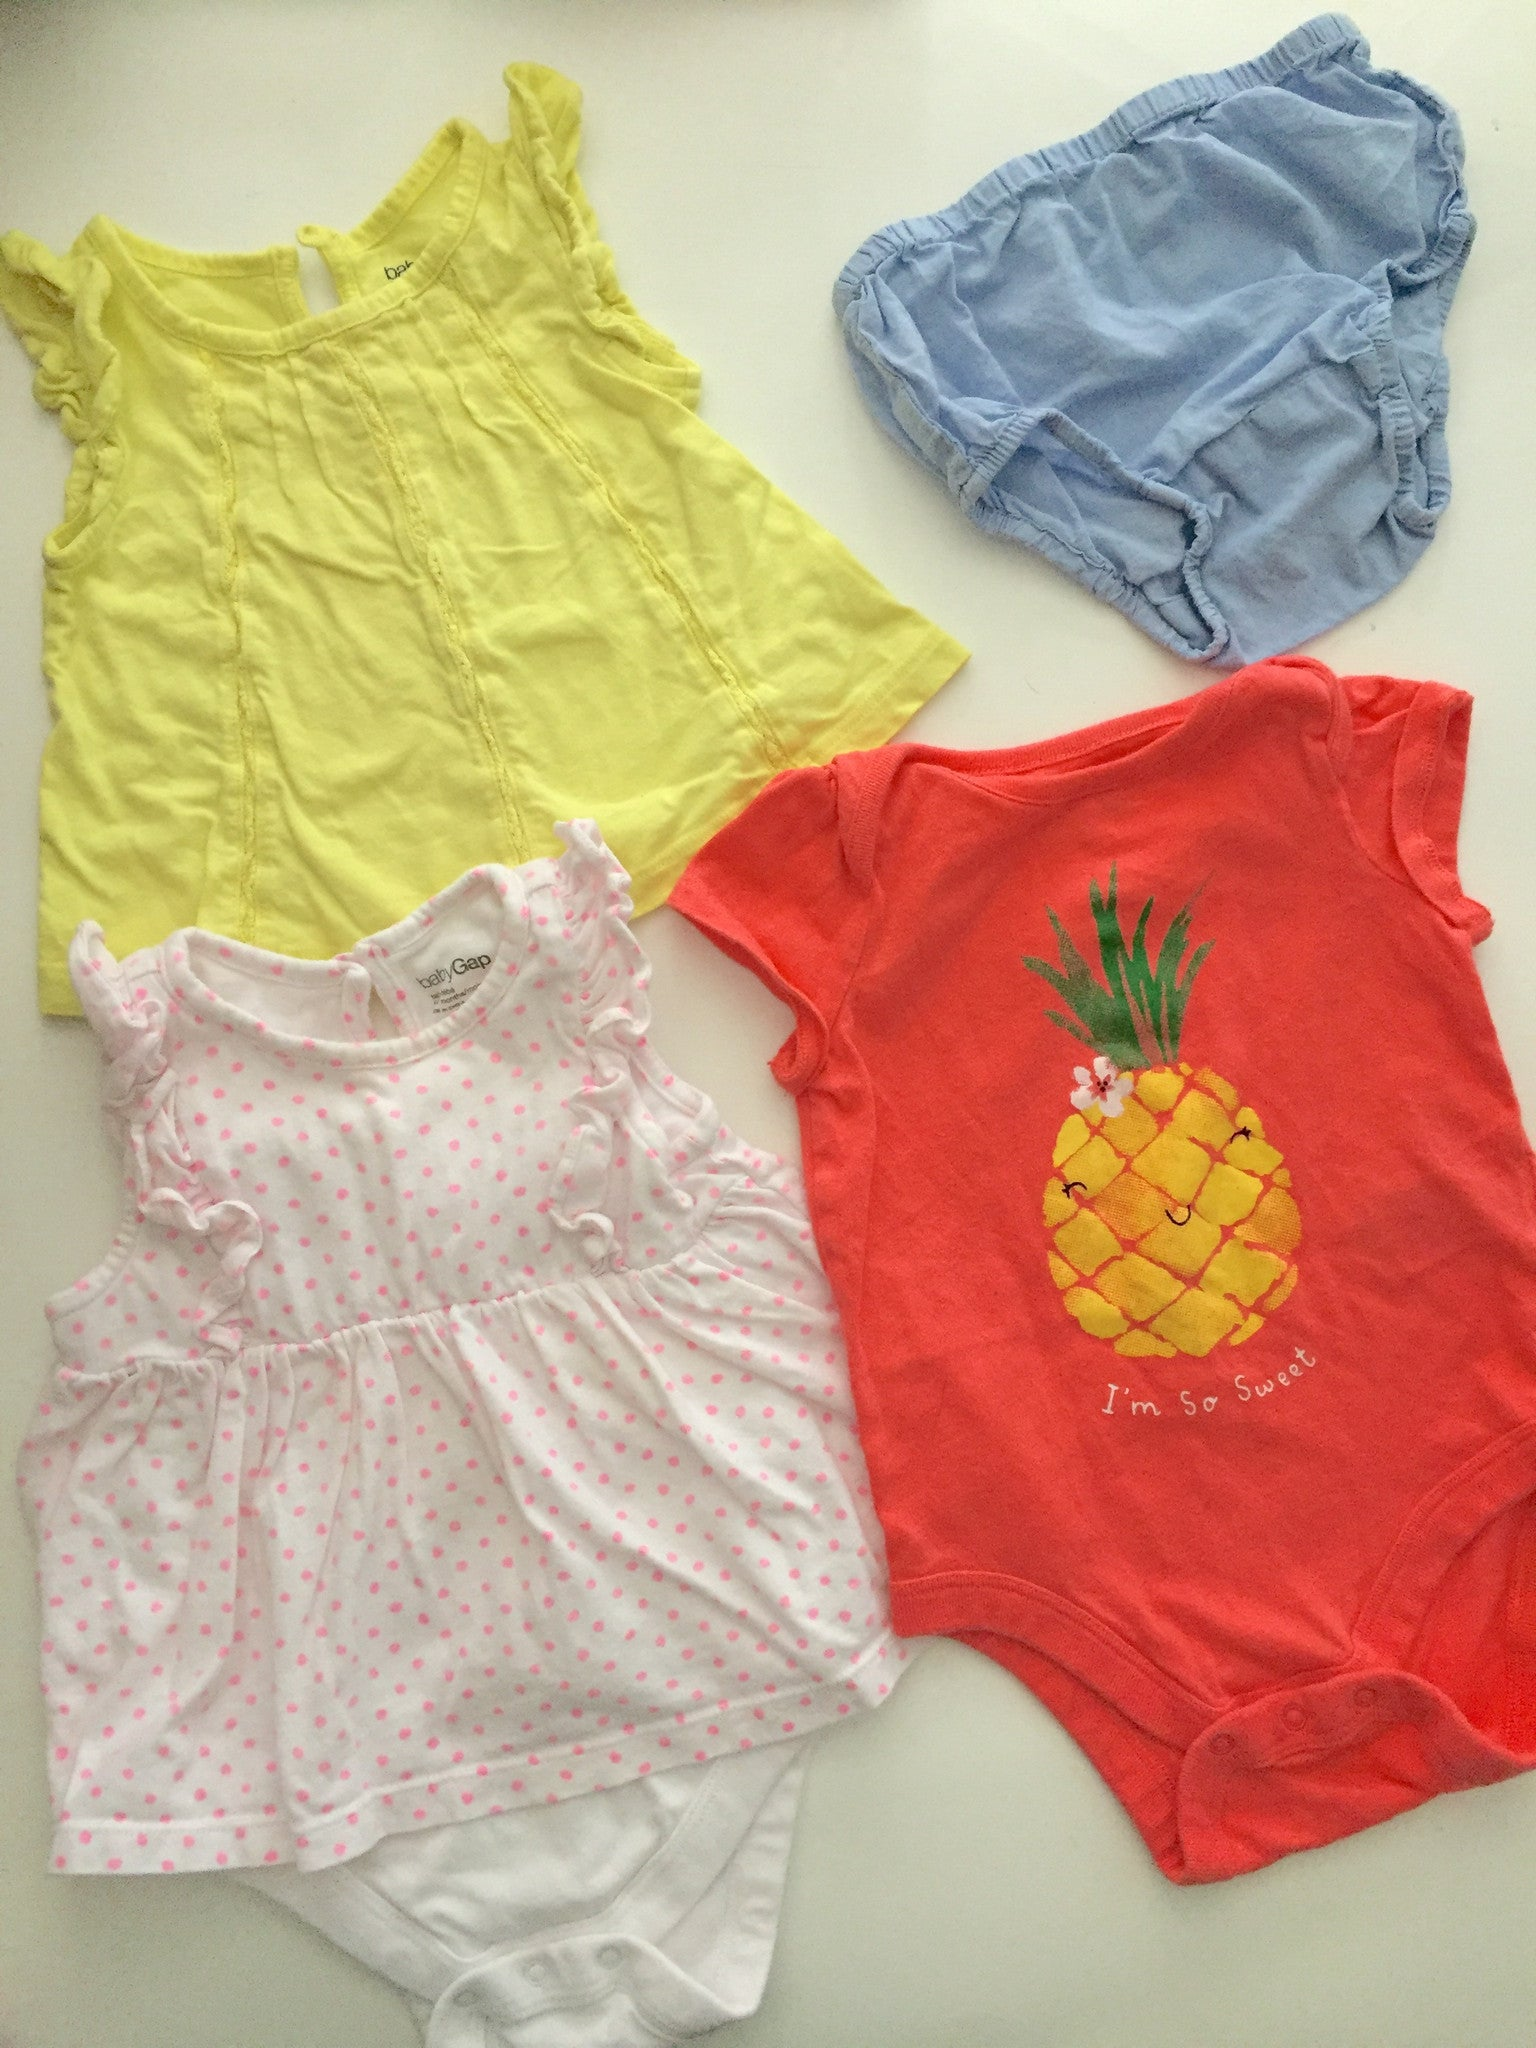 Carter's Shirts + Baby Gap Onesie + Chambray Bloomer Shorts | 6-12M